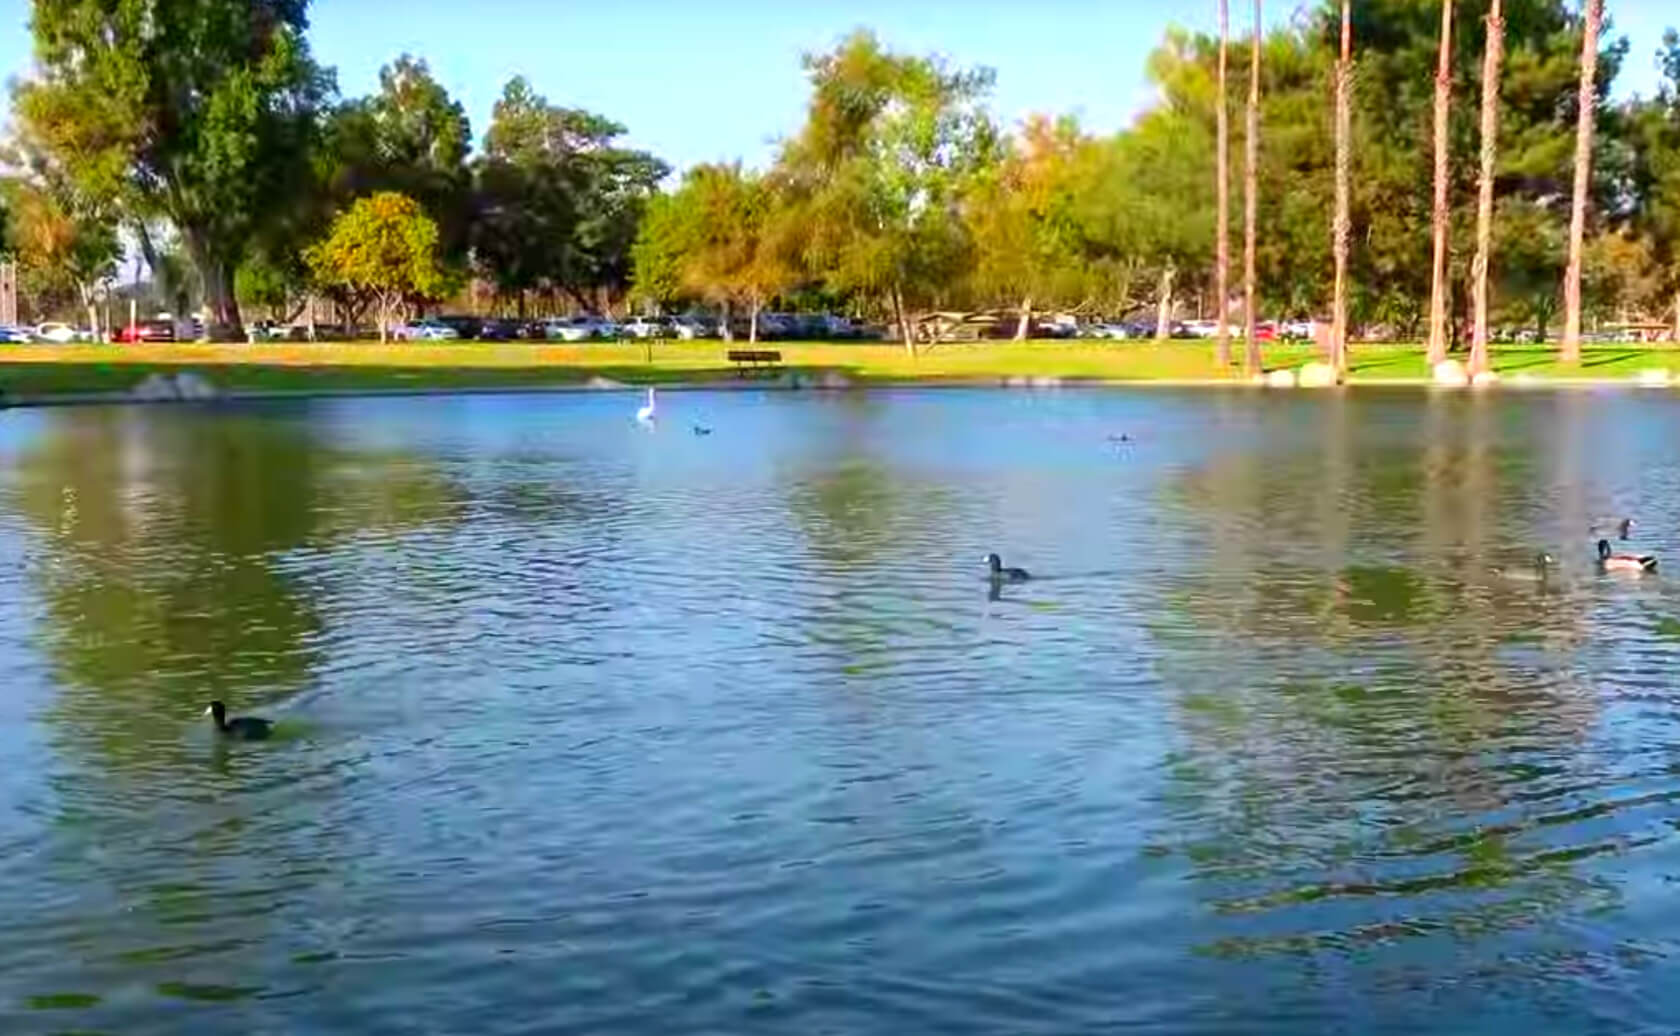 Mile-Square-Park-Lake-Fishing-Guide-Report-Fountain-Valley-CA-02